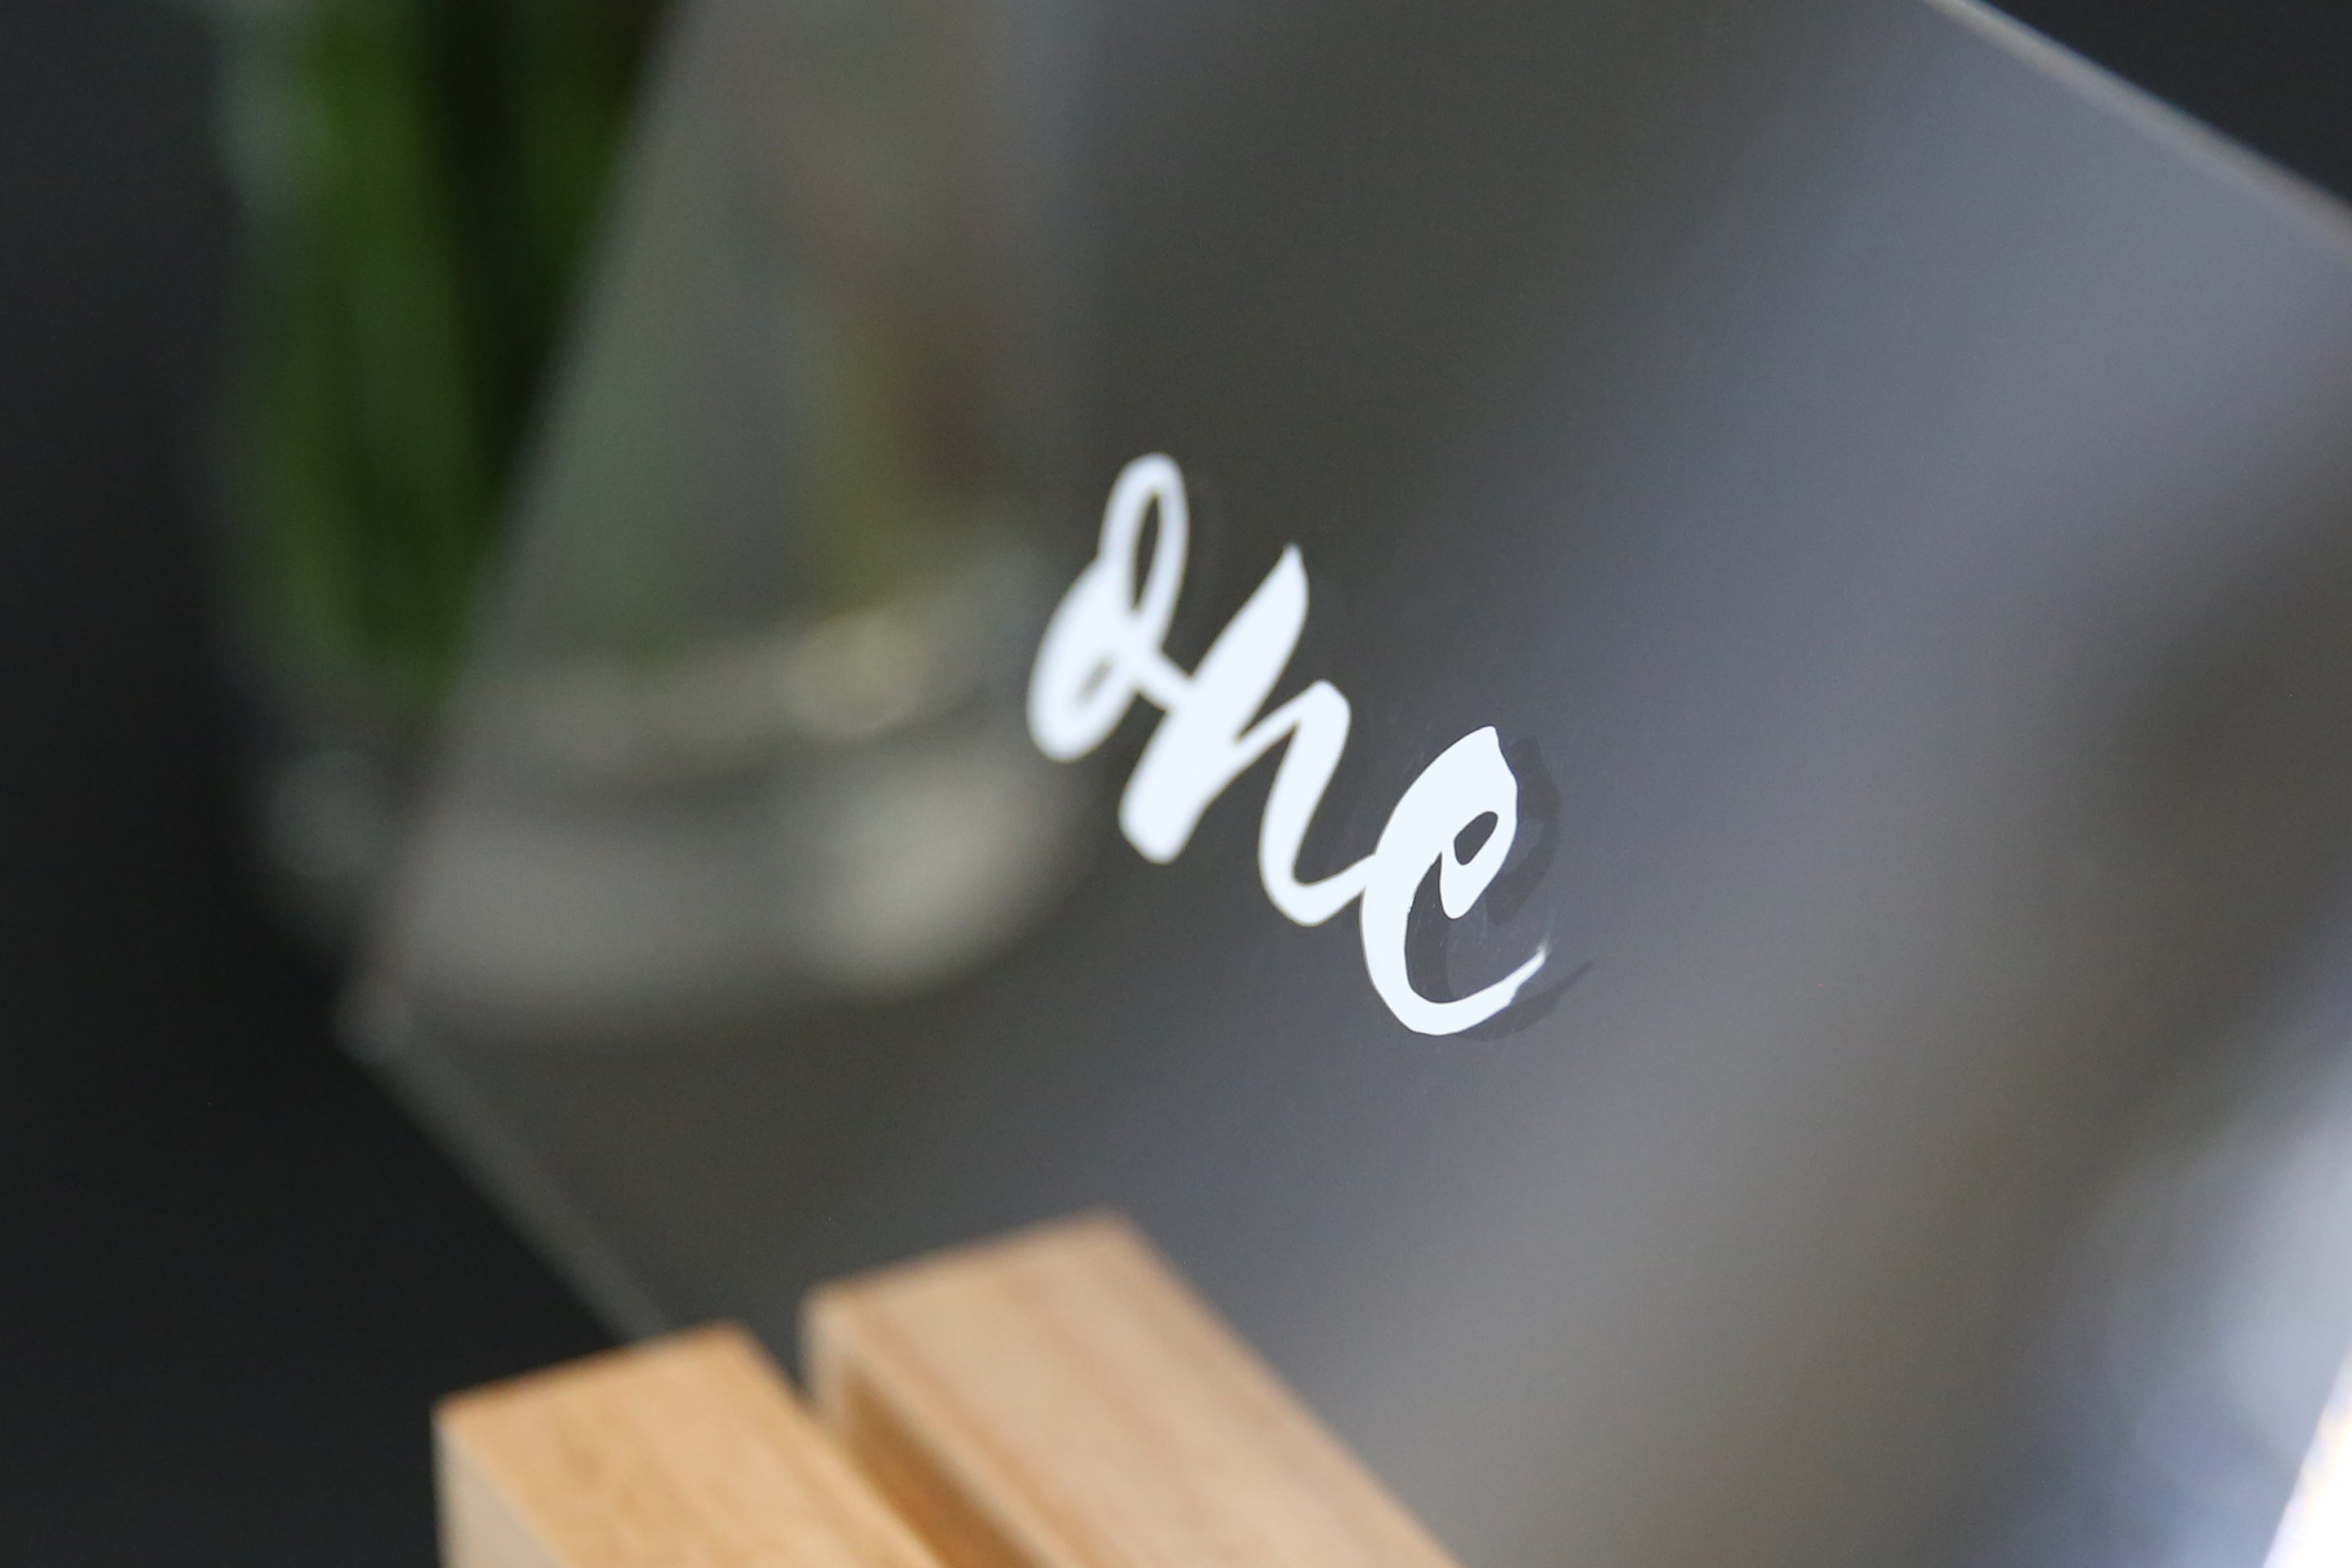 Acrylic Wedding Table Numbers with Wood Stand - Calligraphy style